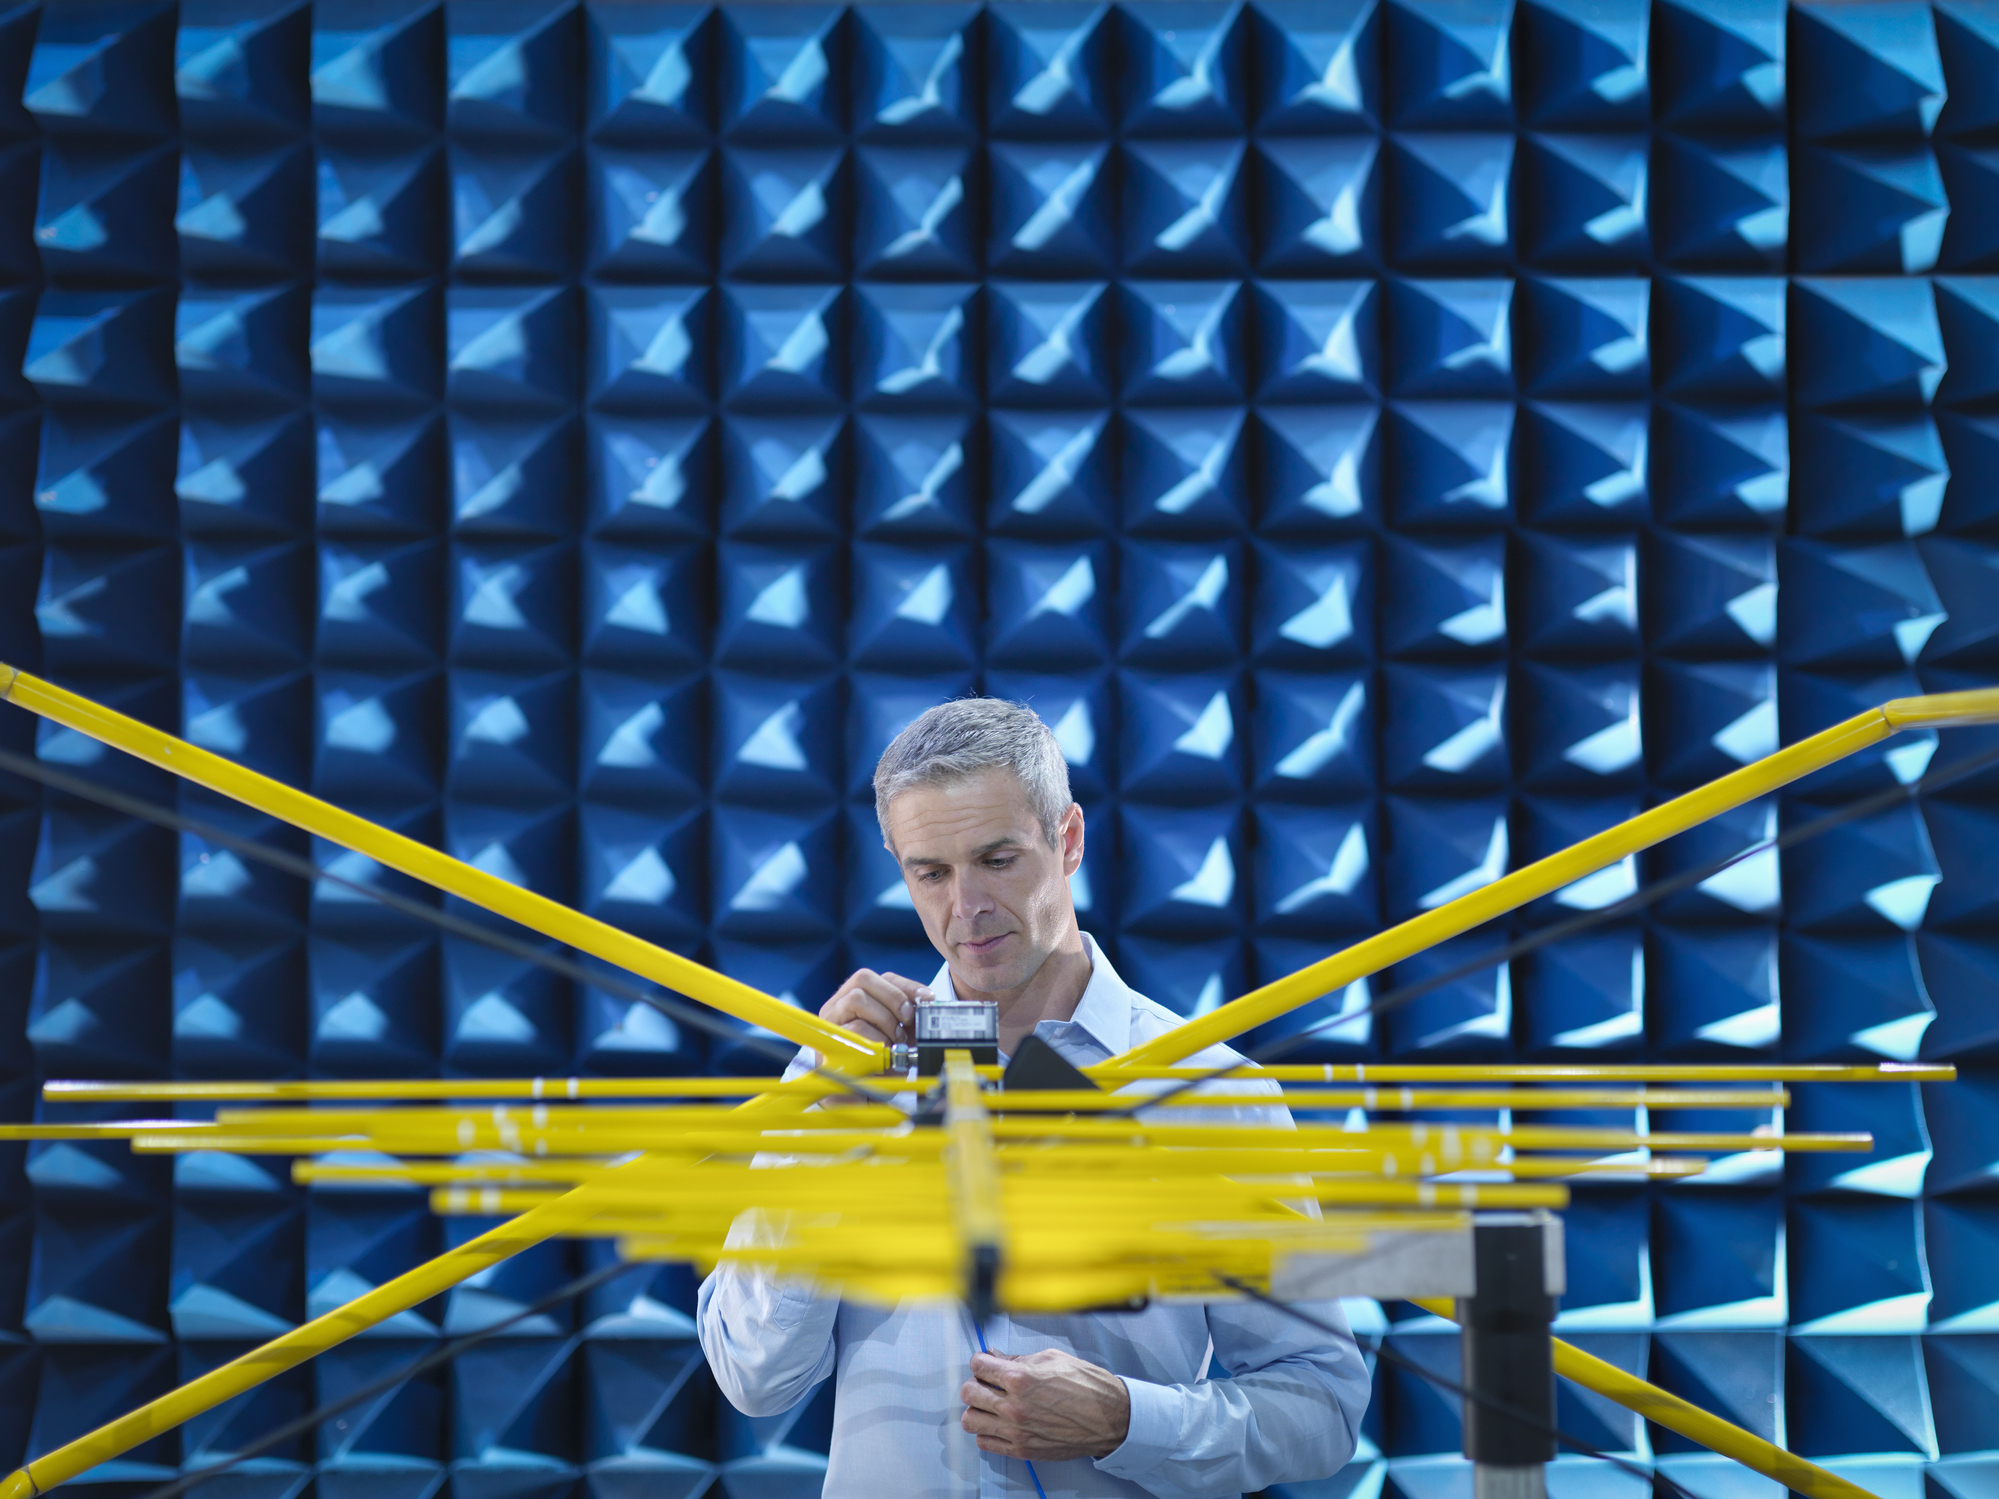 This person is doing electromagnetic testing in a special test chamber, similar to what National Instruments would use to test devices.